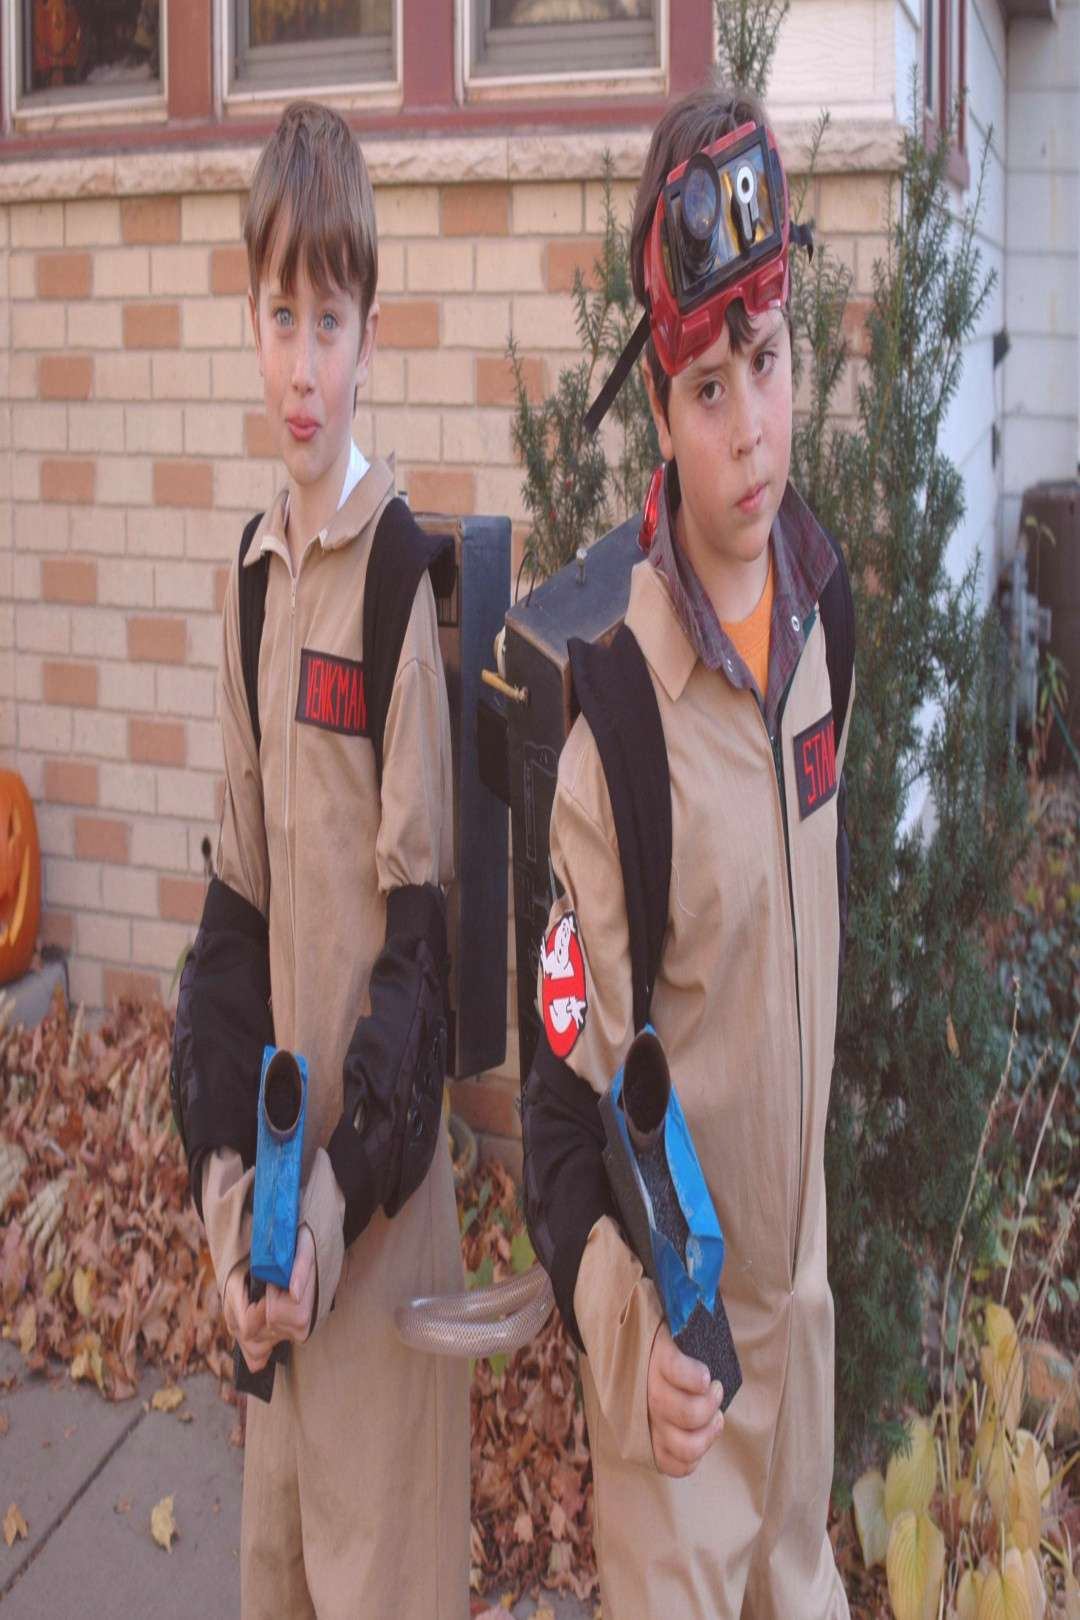 Ghostbusters costumes and boys made their own proton packs#boys